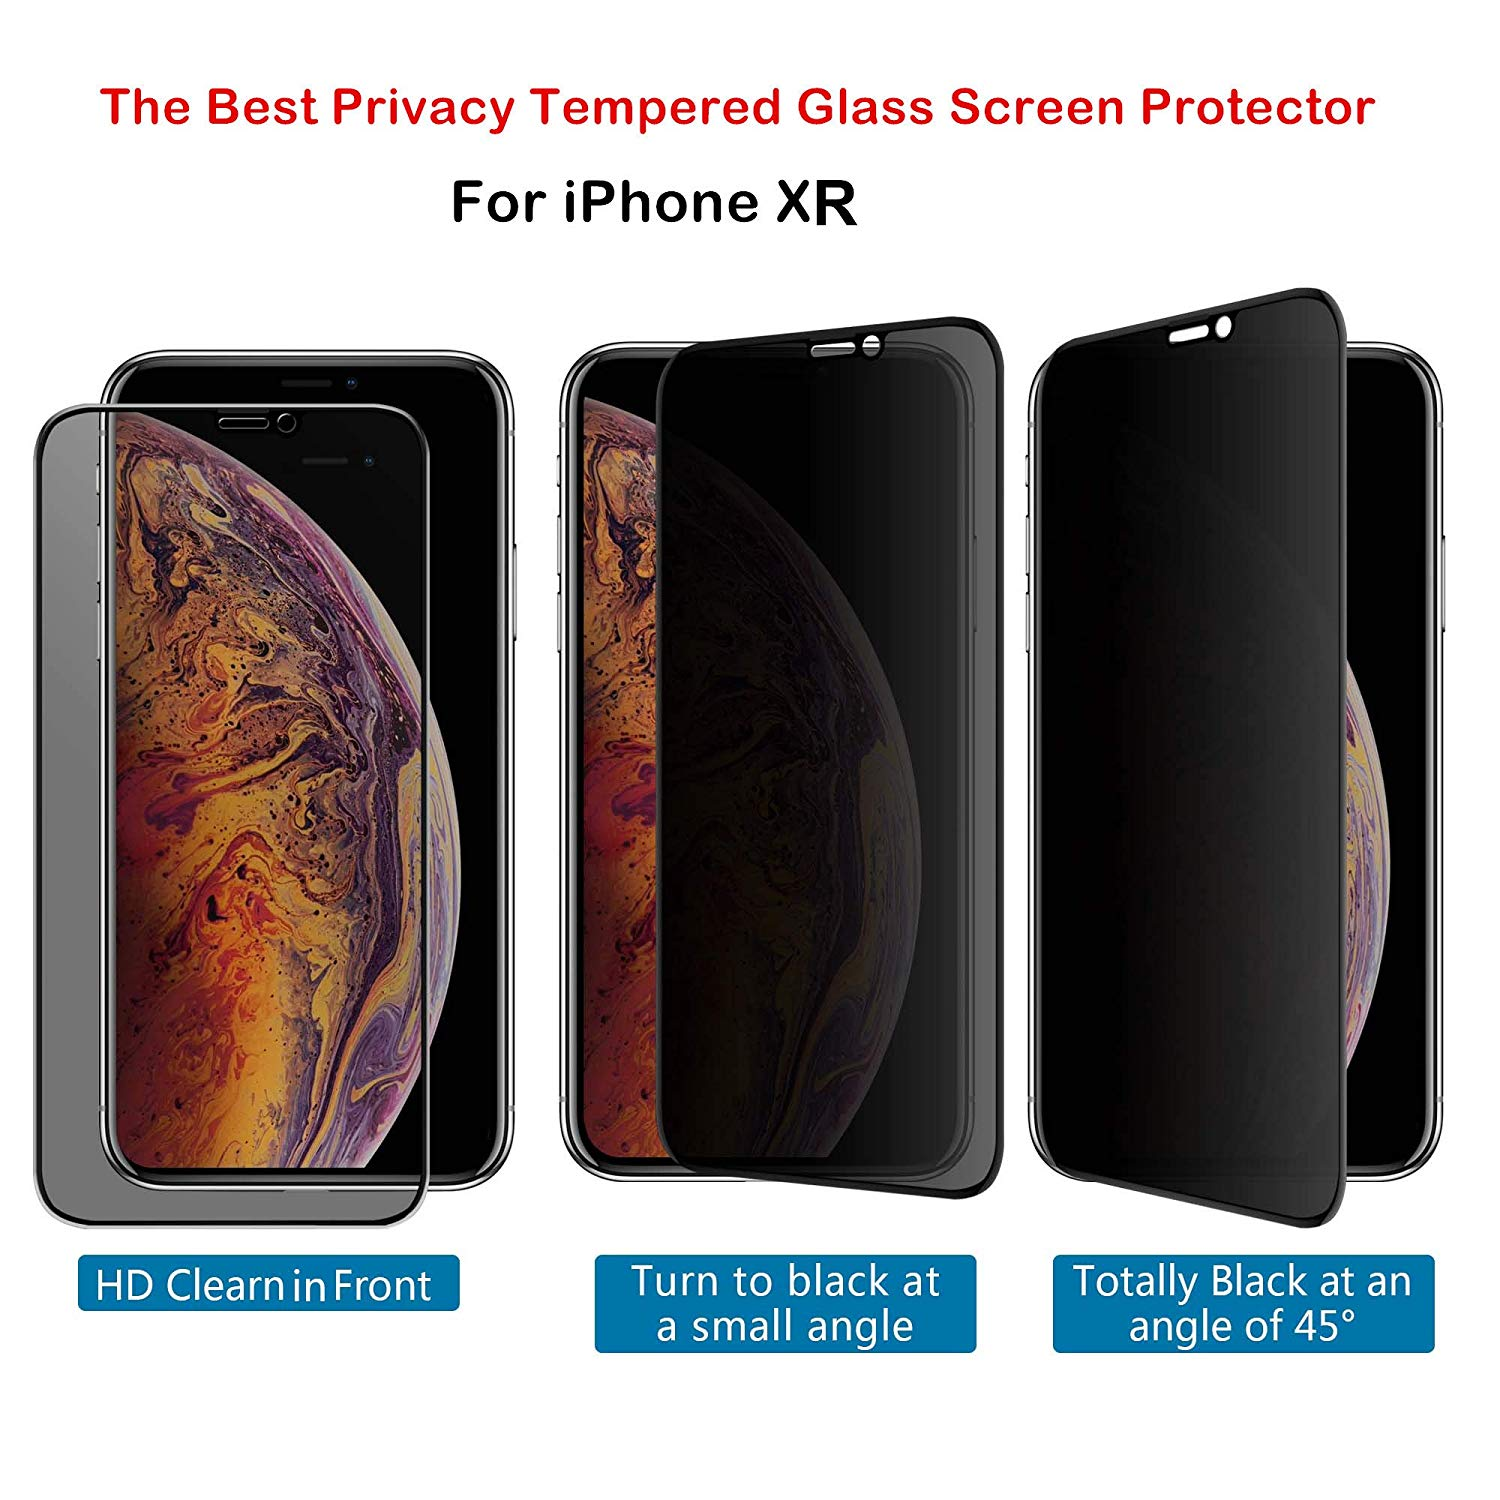 Premium Privacy Tempered Glass Screen Protector for iPhone XR,Full Coverage Protection,HD Clarity,Bubble Free Film